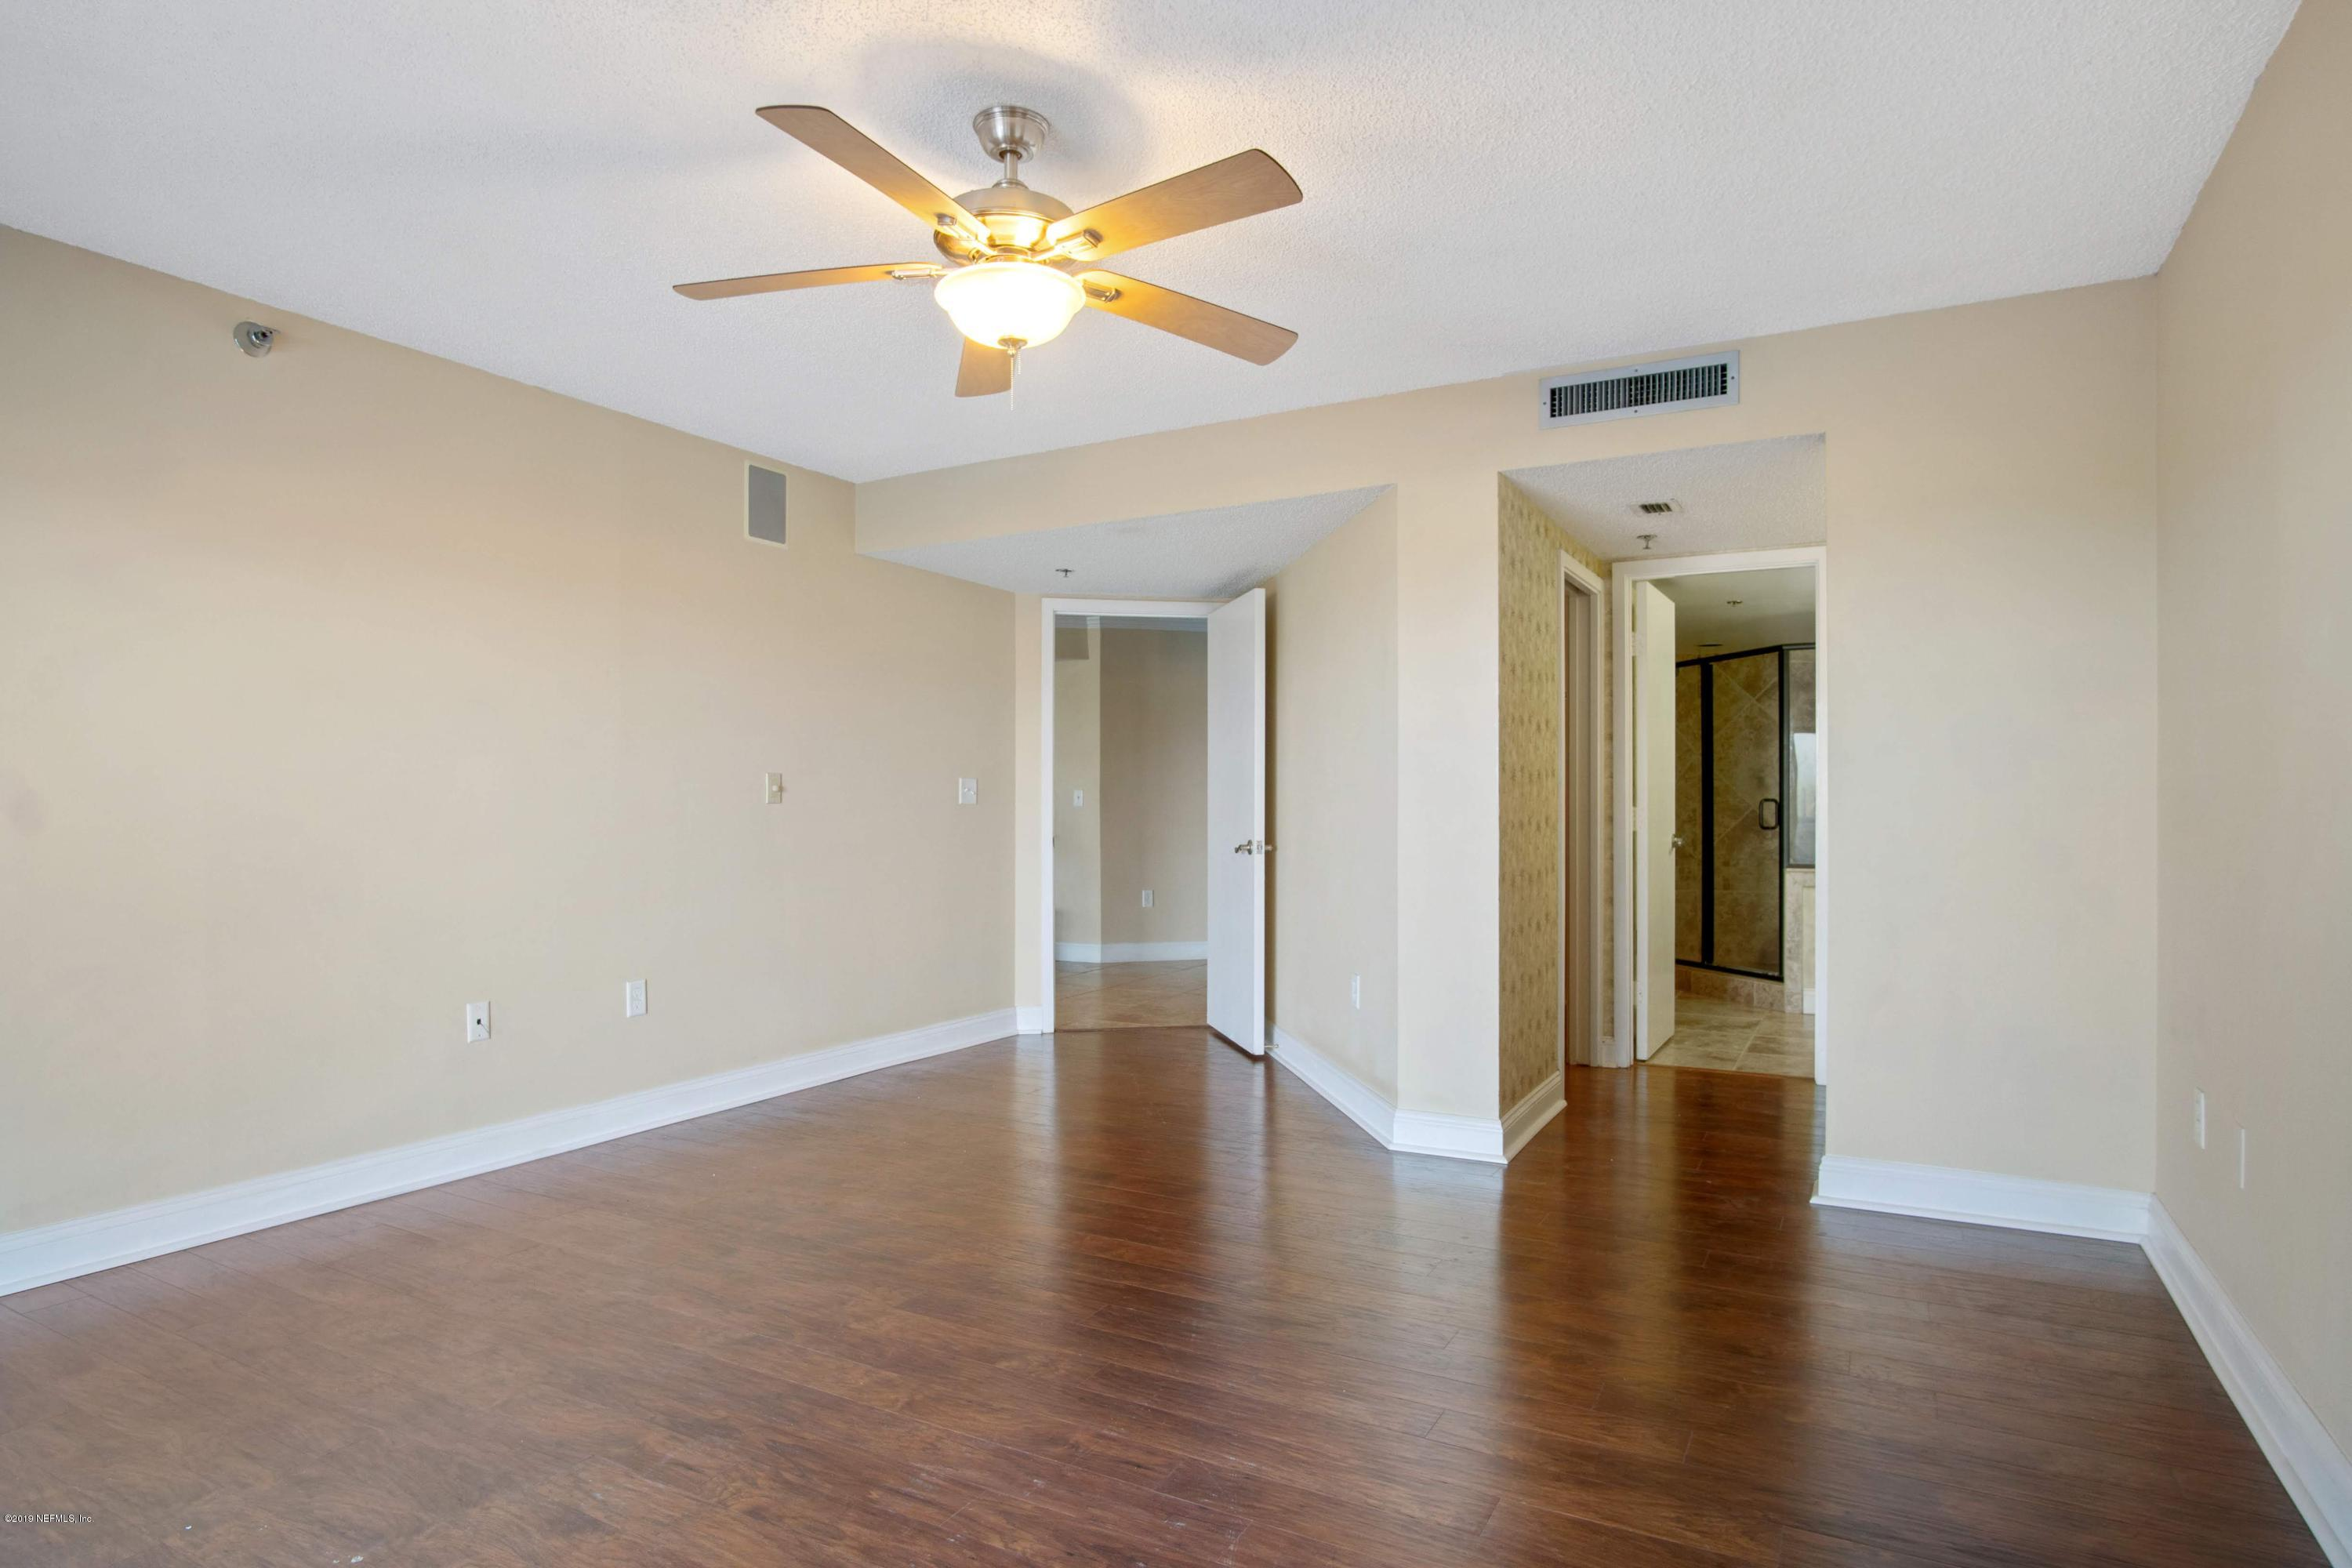 1951 OCEAN, JACKSONVILLE BEACH, FLORIDA 32250, 3 Bedrooms Bedrooms, ,2 BathroomsBathrooms,Condo,For sale,OCEAN,1014328